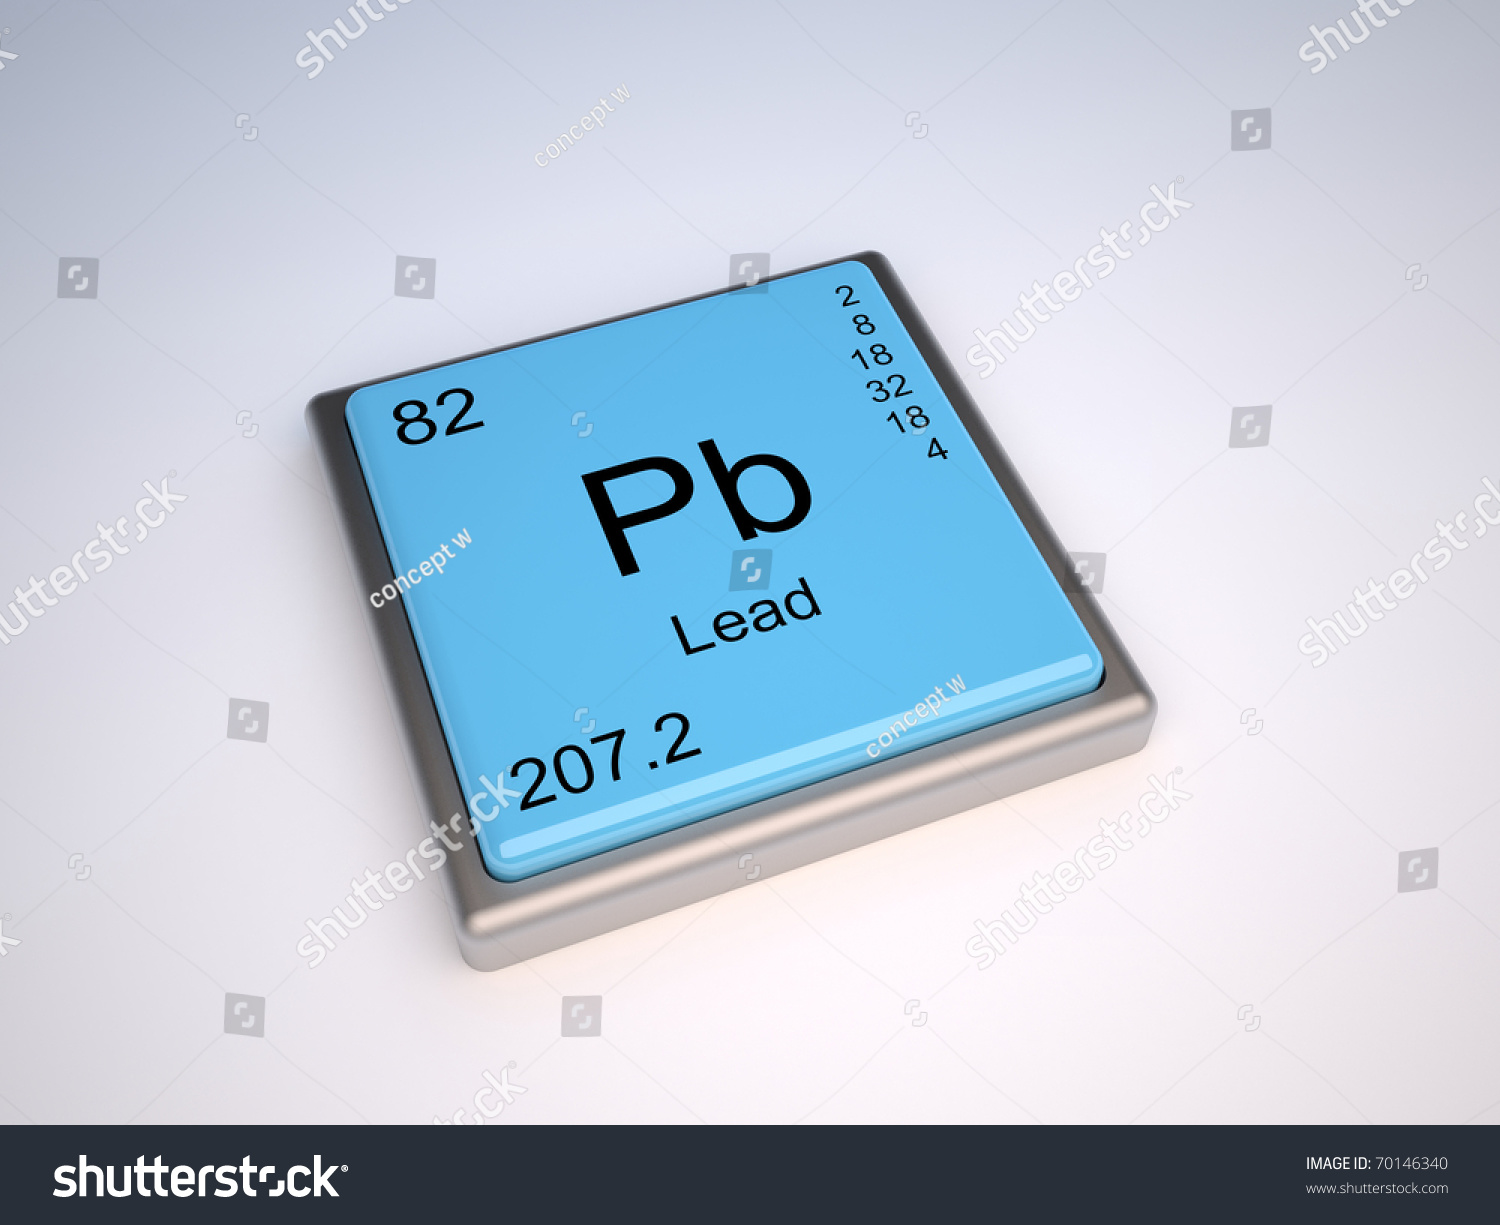 Lead Chemical Element Periodic Table Symbol Stock Illustration